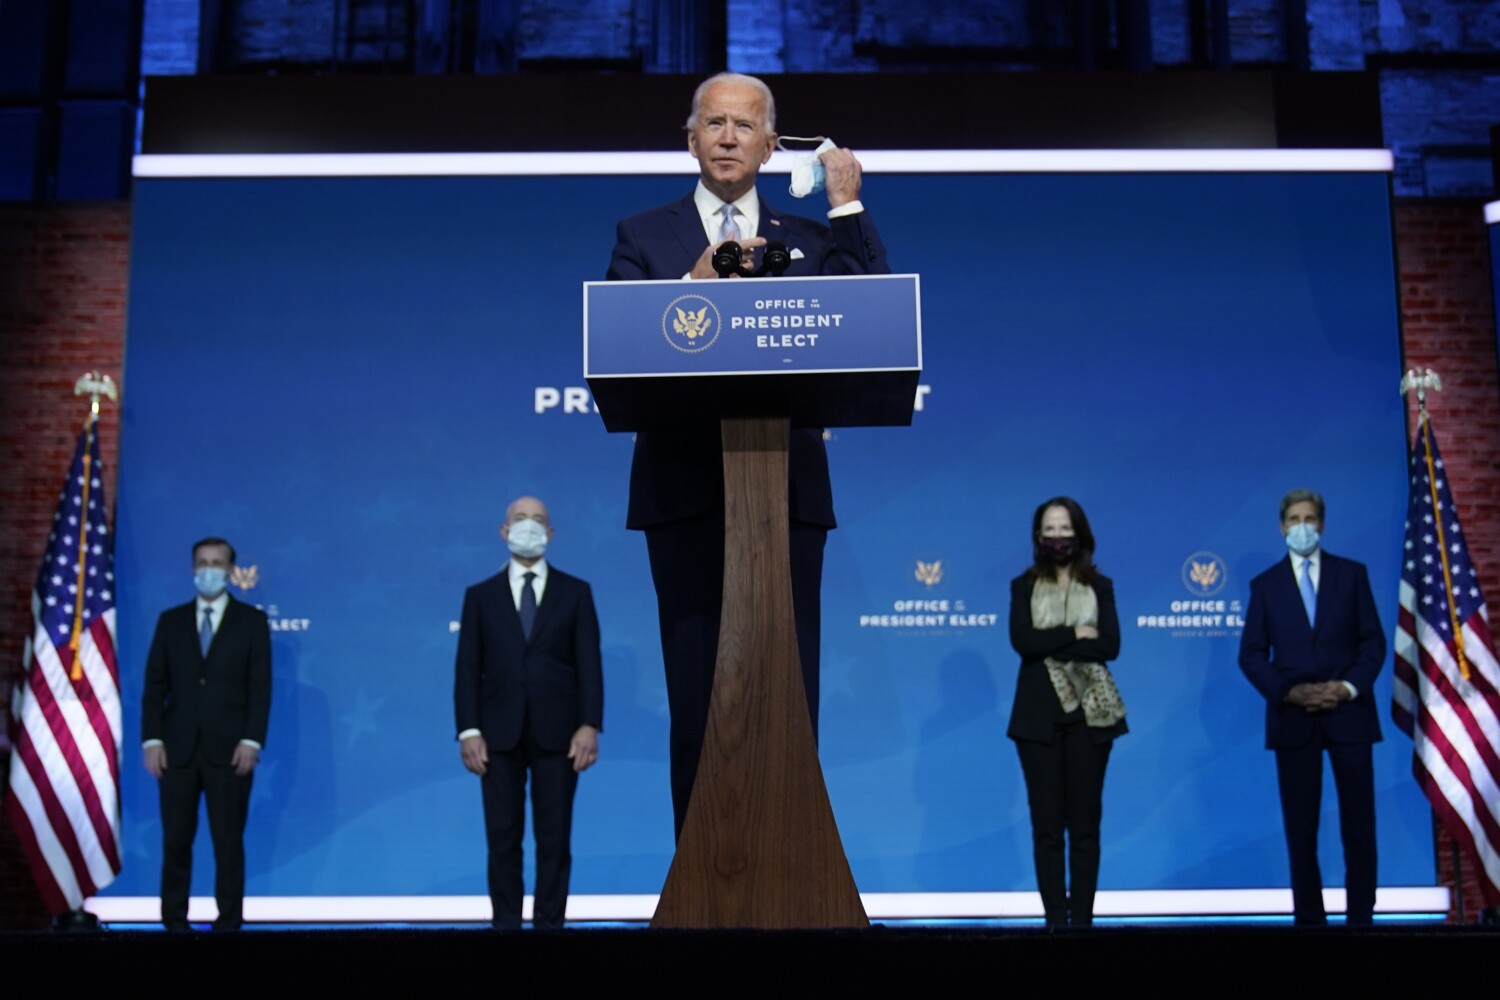 Biden picks a Goldilocks Cabinet, neither too left or right thumbnail